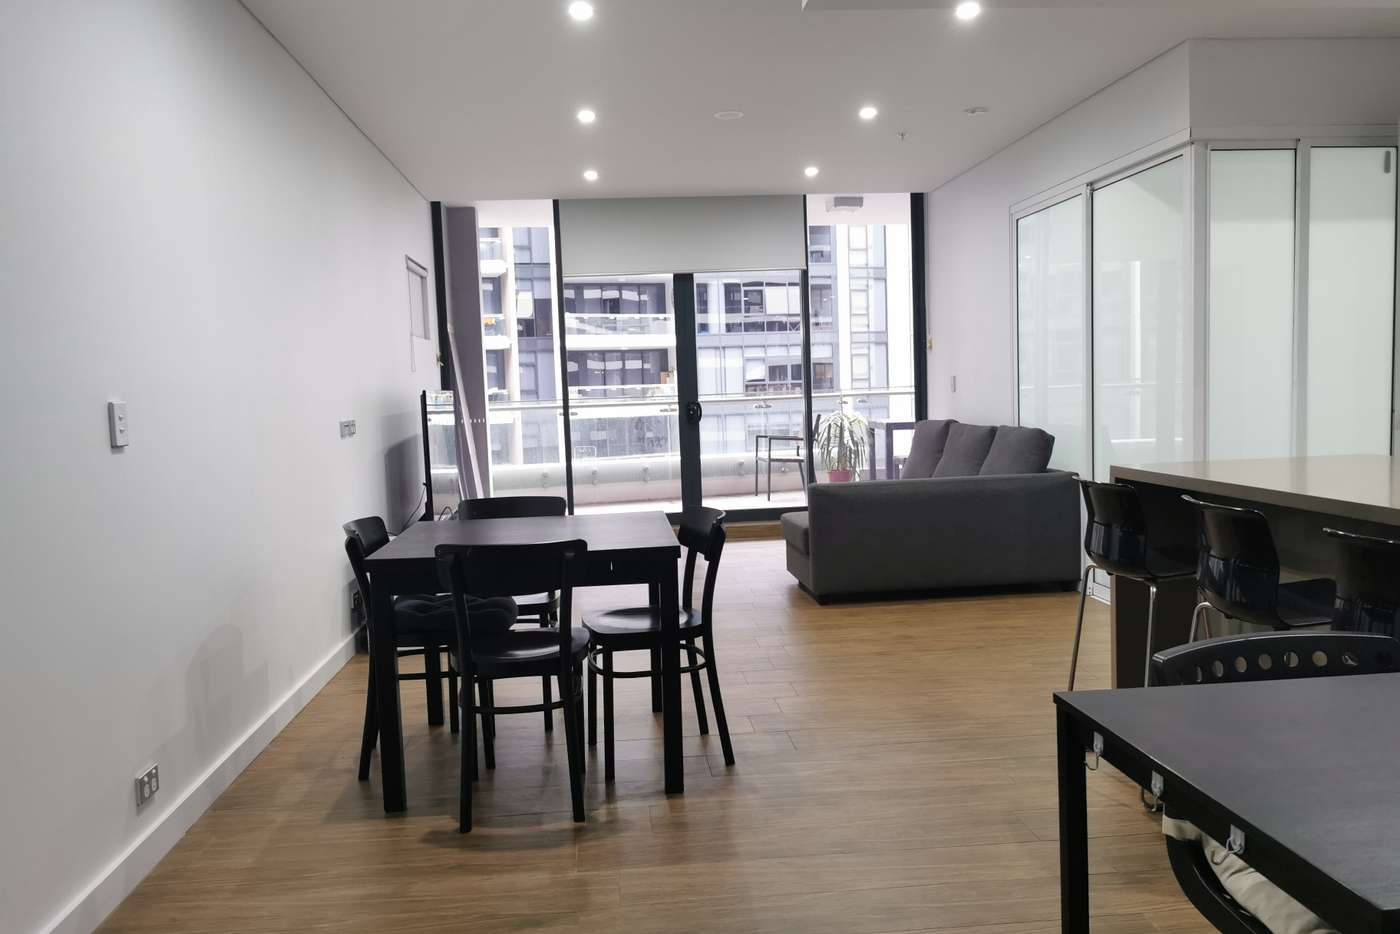 Main view of Homely apartment listing, 816/3 Gearin Alley, Mascot NSW 2020